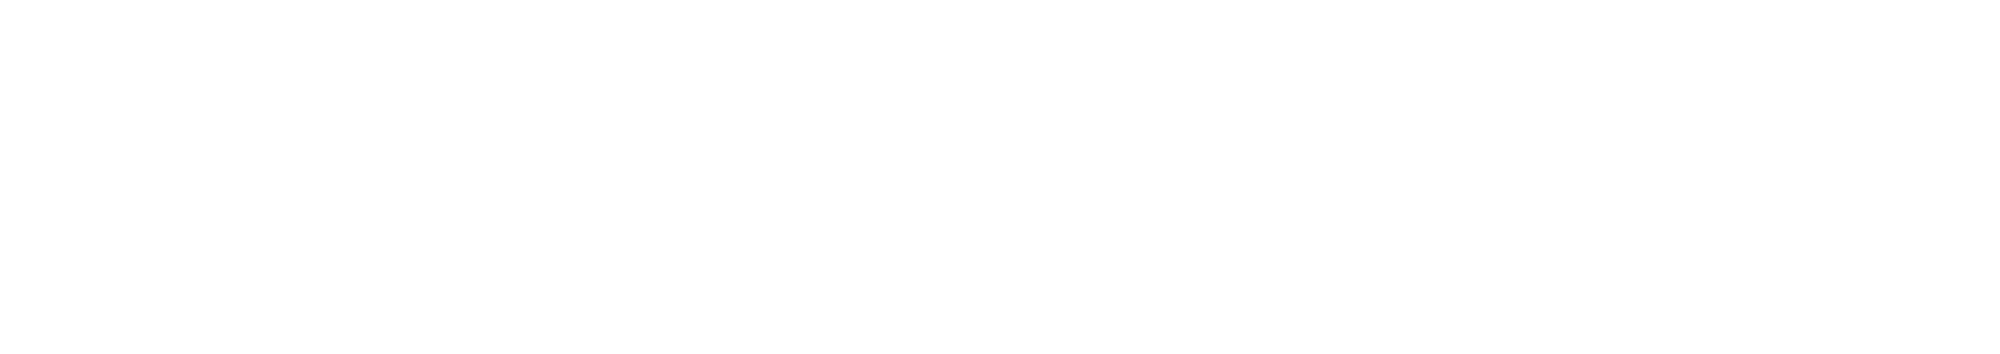 Technology Building Products logo